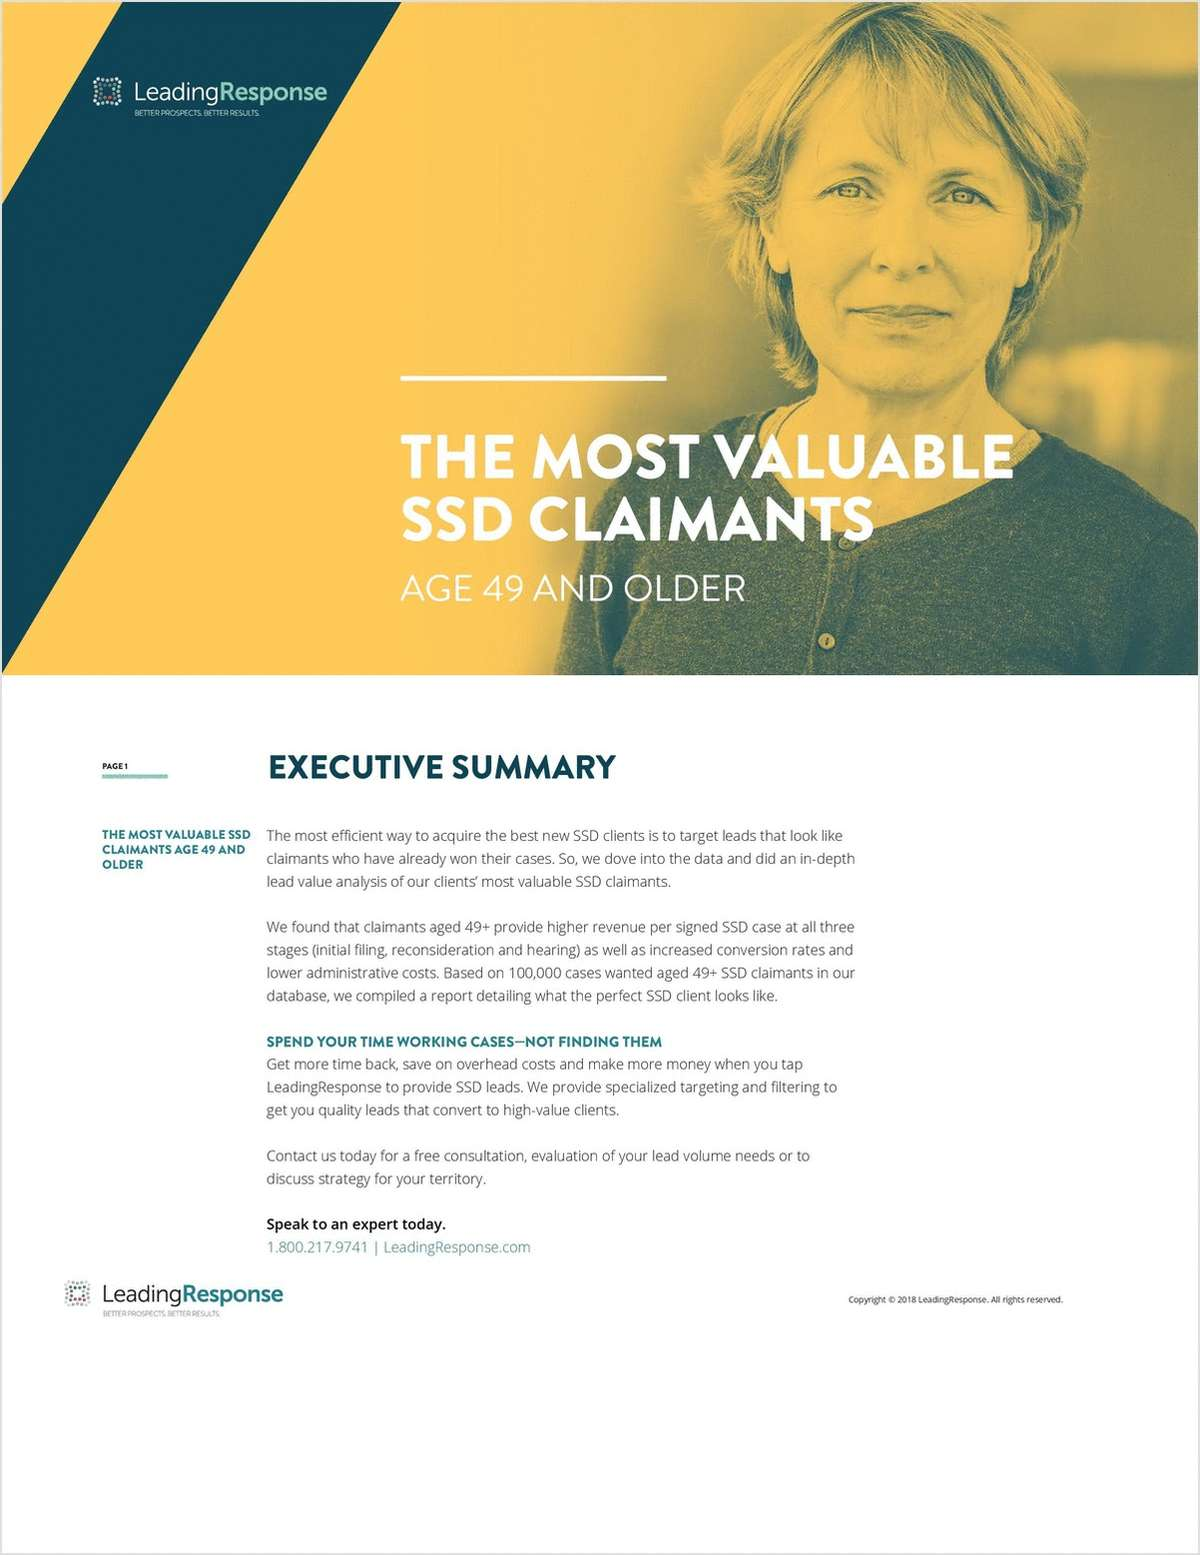 The Most Valuable SSD Claimants